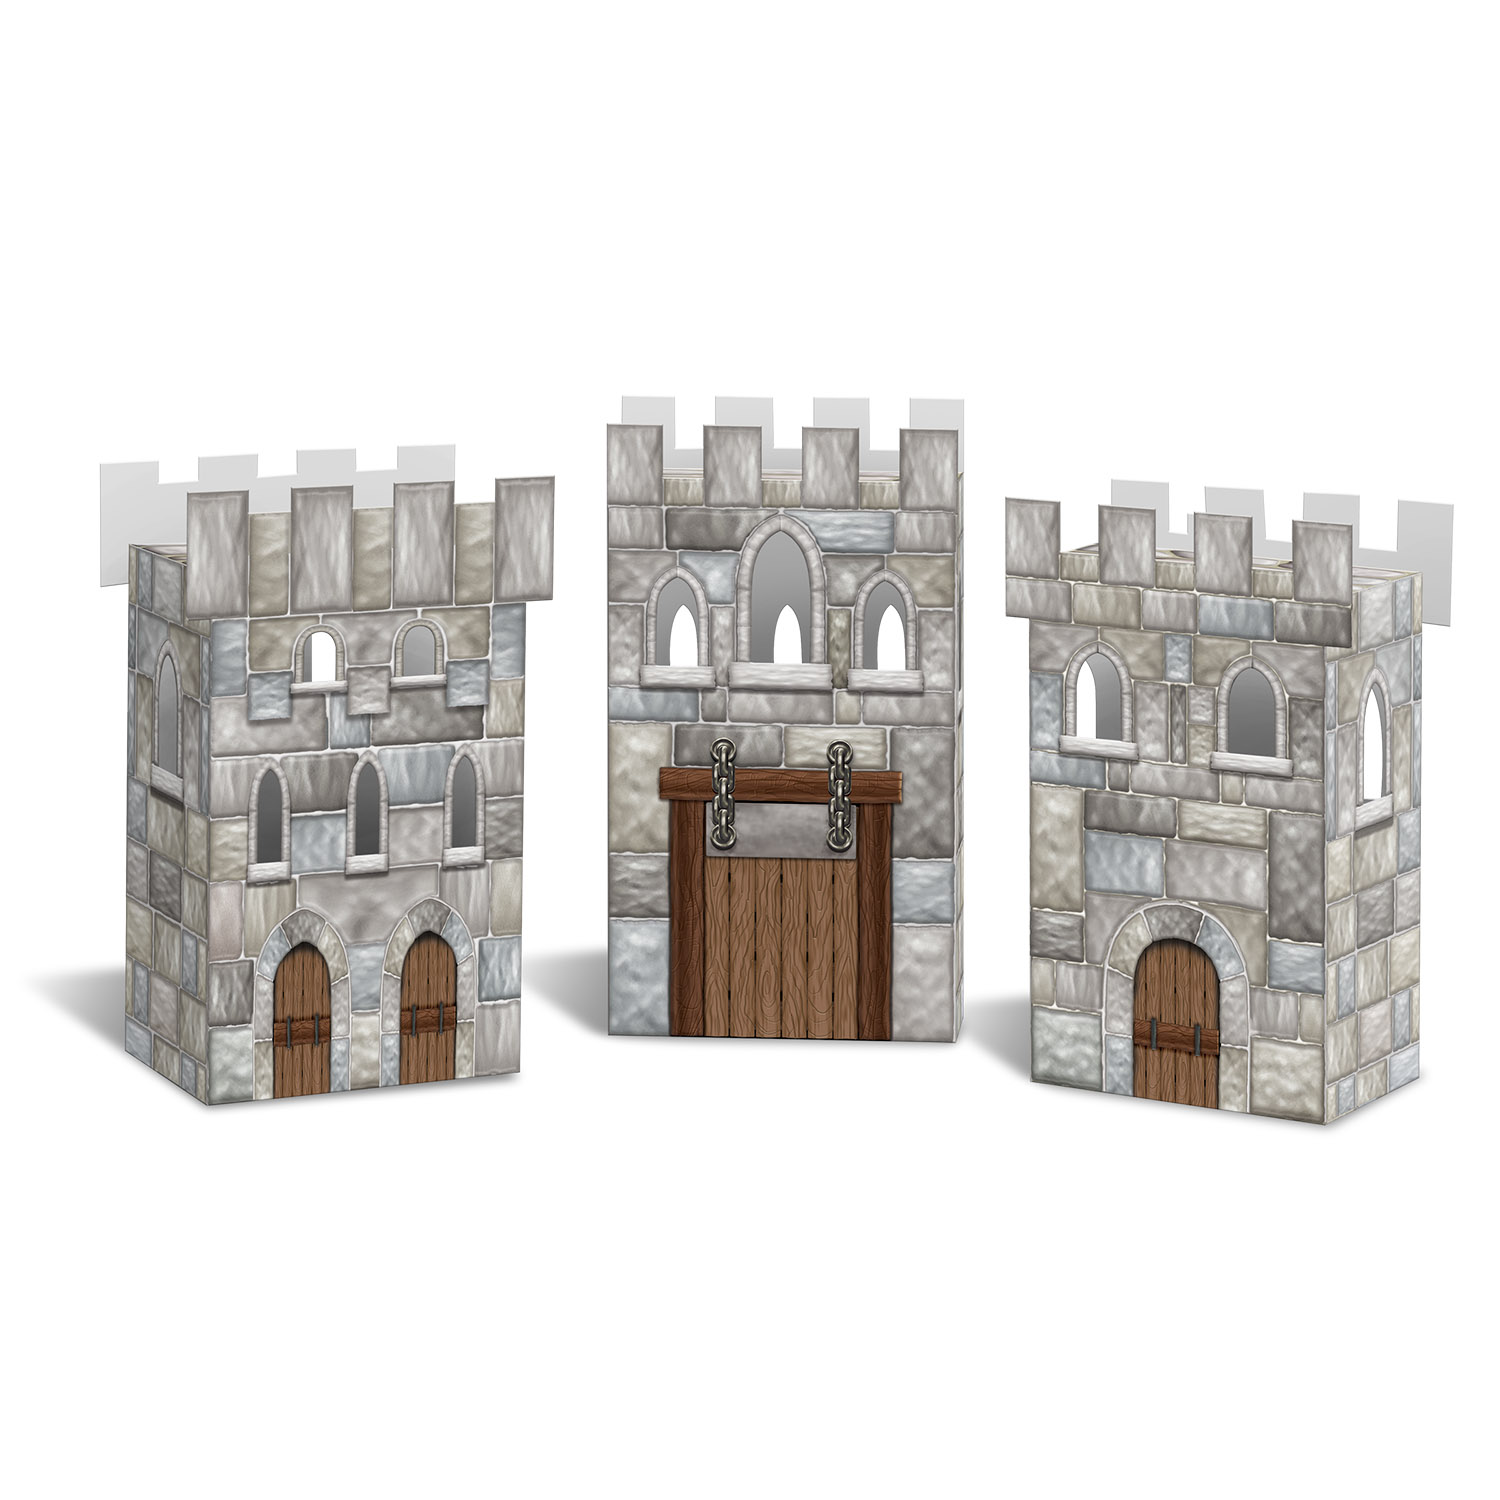 Castle Favor Boxes (Pack of 12) Castle Favor Box, Inexpensive party decor, Castle Centerpieces, Cheap favor supplies, Birthday ideas, Medieval party supplies, Wholesale party supplies, Inexpensive party goods, Medieval birthday party, Novelty decor